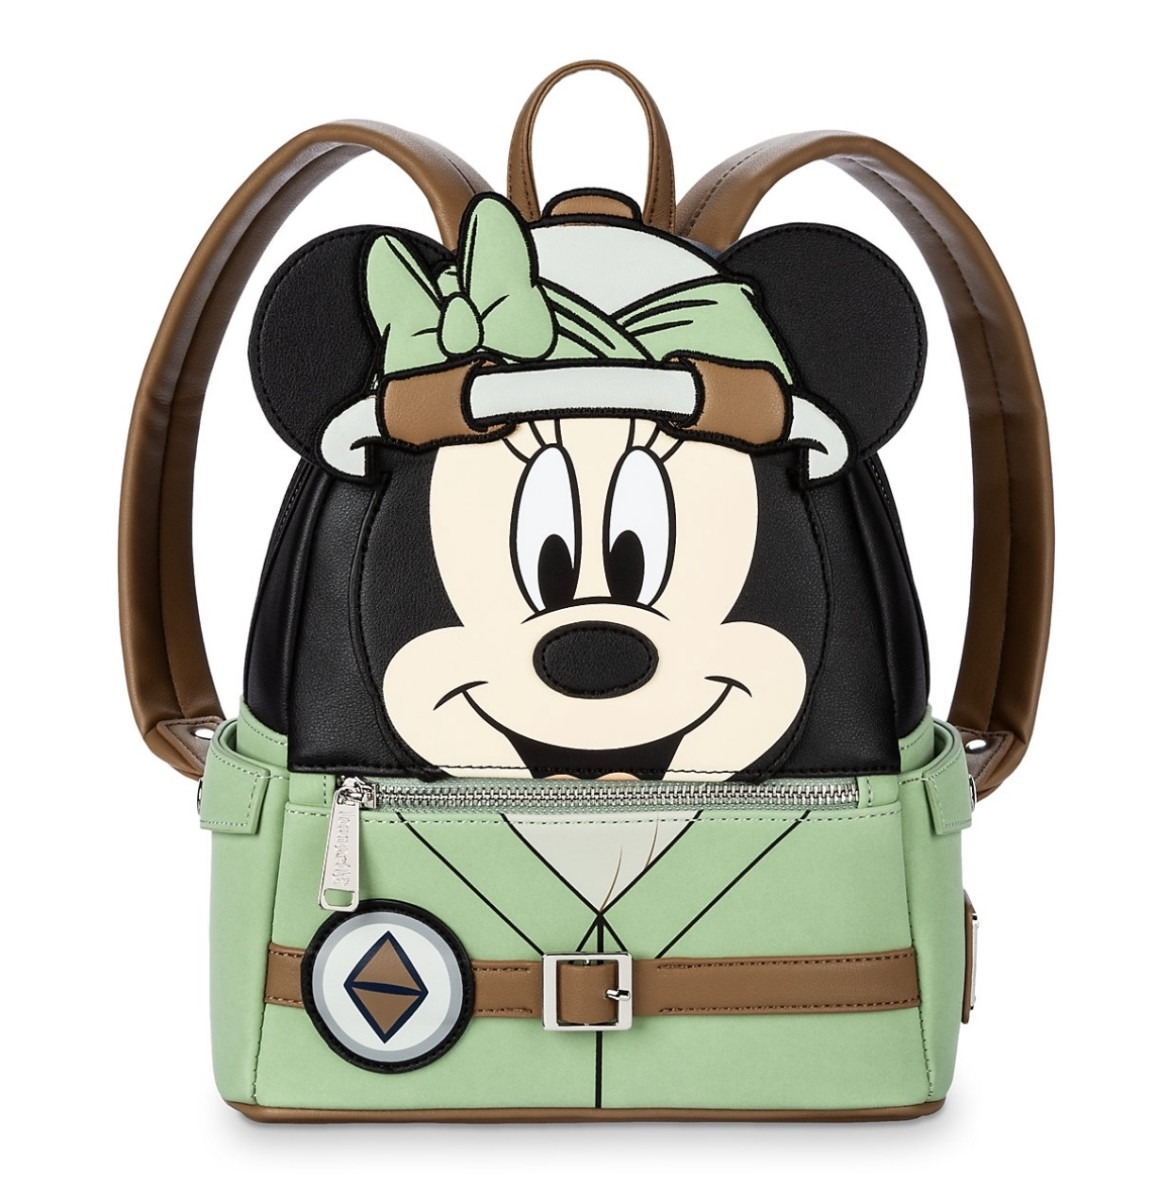 Loungefly Accessories on shopDisney! 1